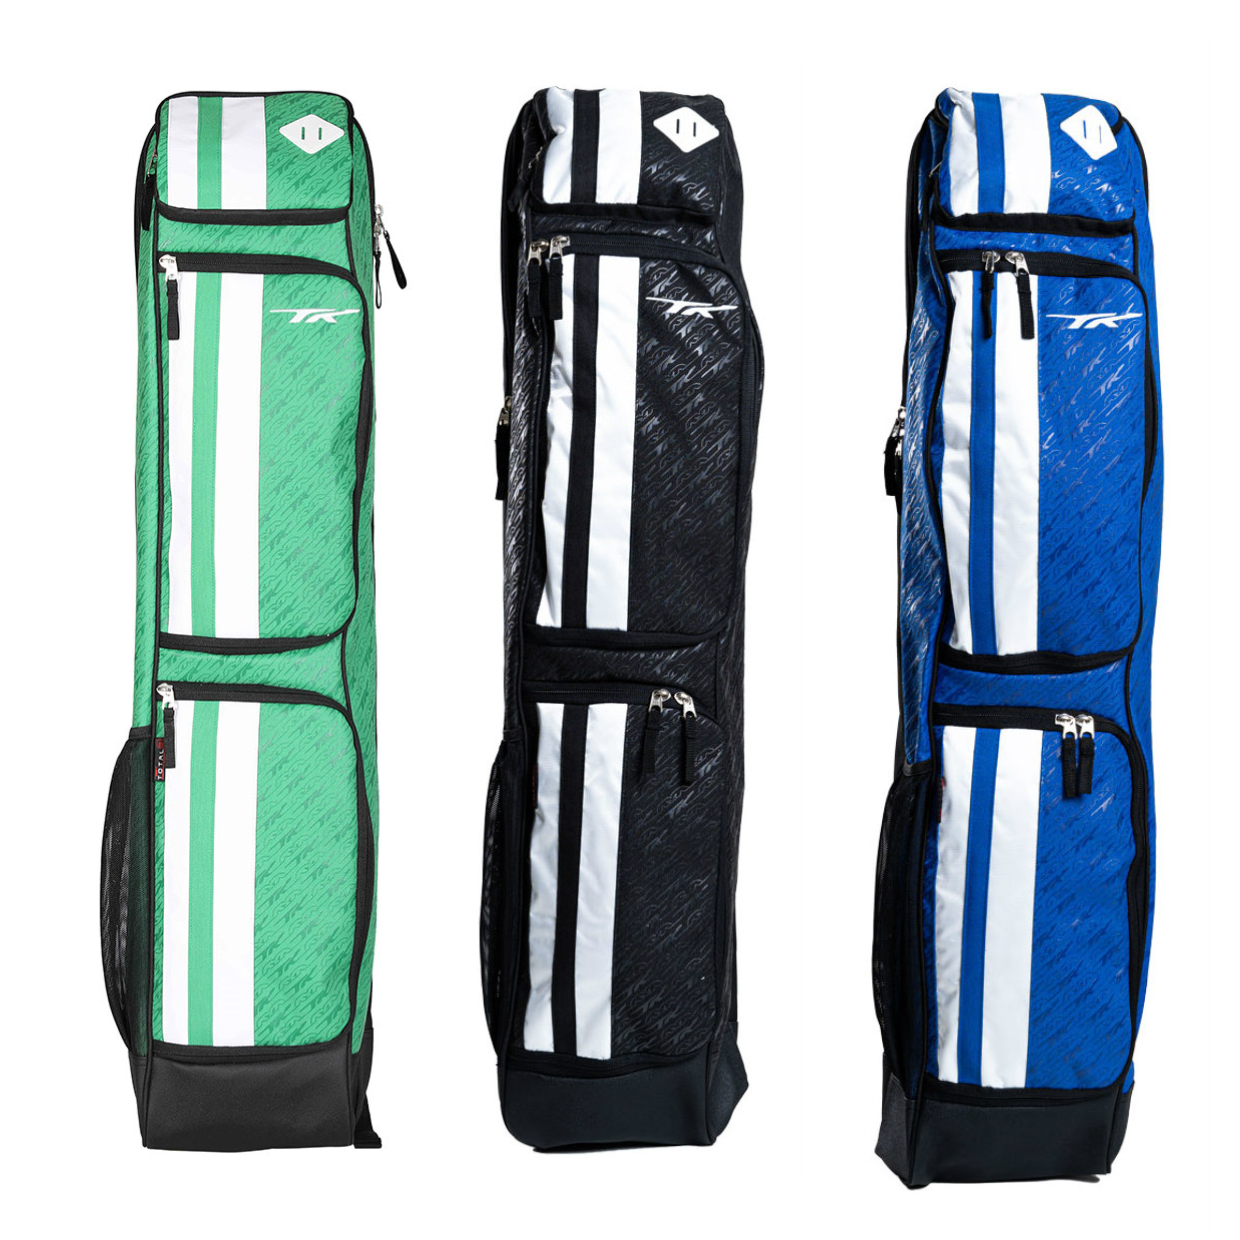 TK Total Three 3.2 Hockey bag